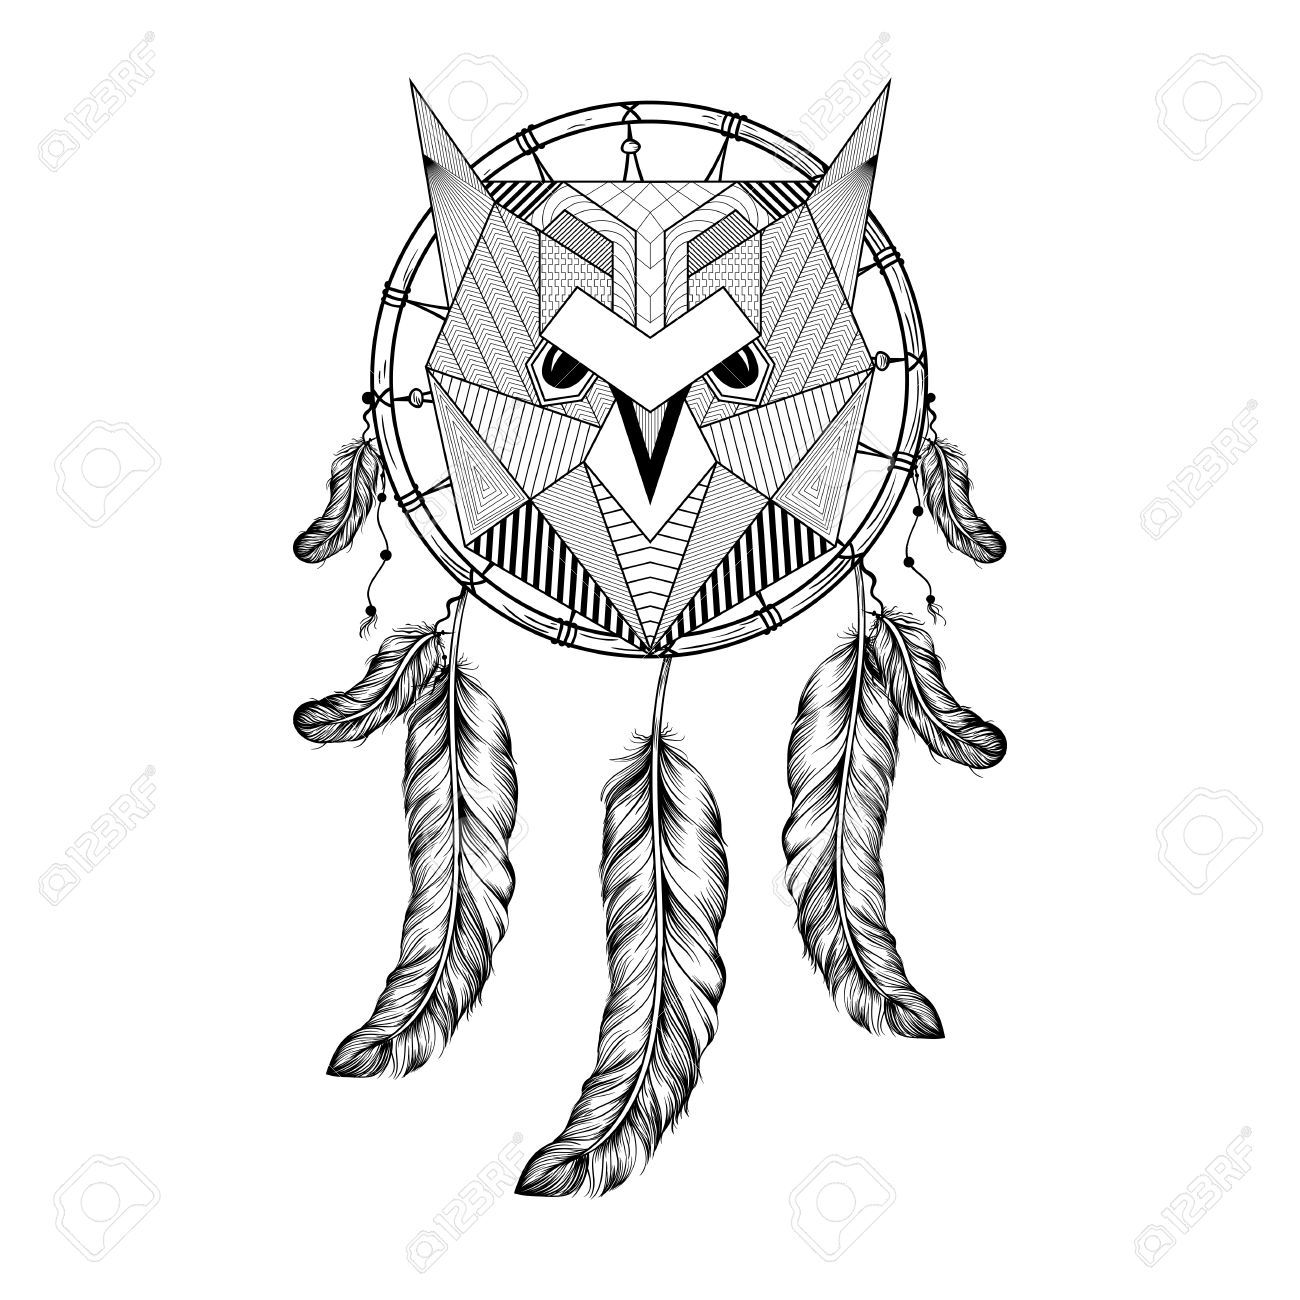 hand drawn owl bird on dream catcher with feathers for adult coloring pages art therapy